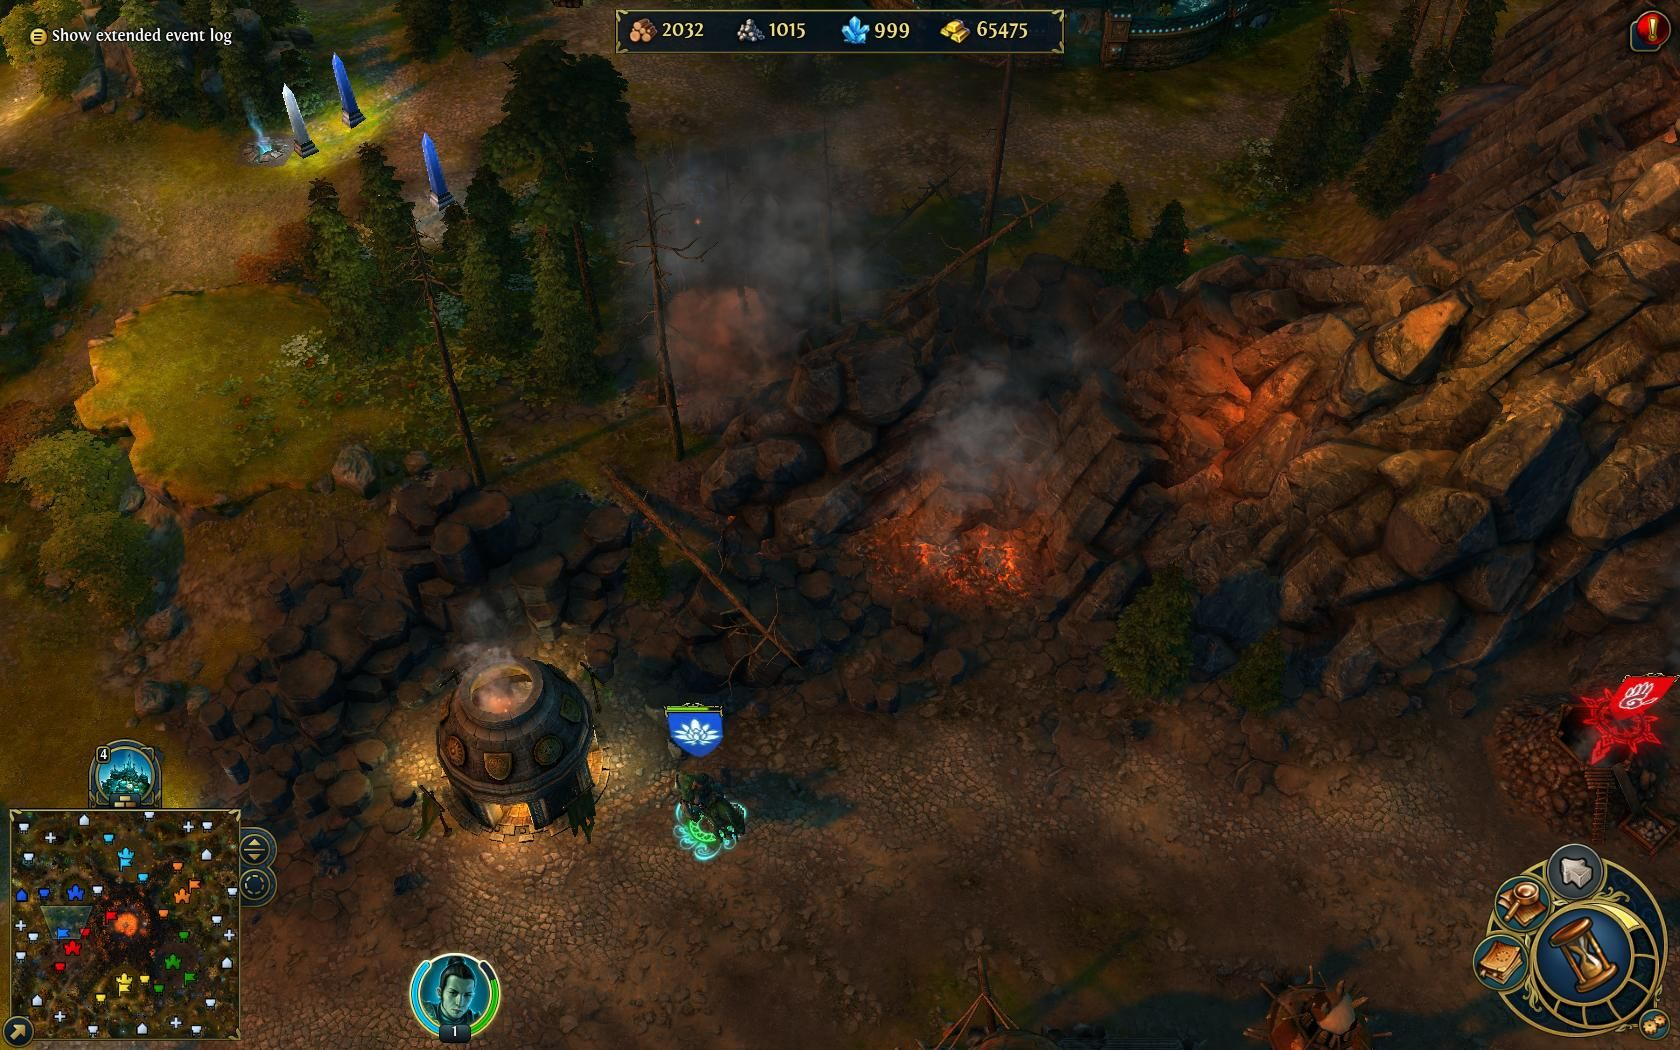 Heroes of might and magic 6 mac os x 10.8